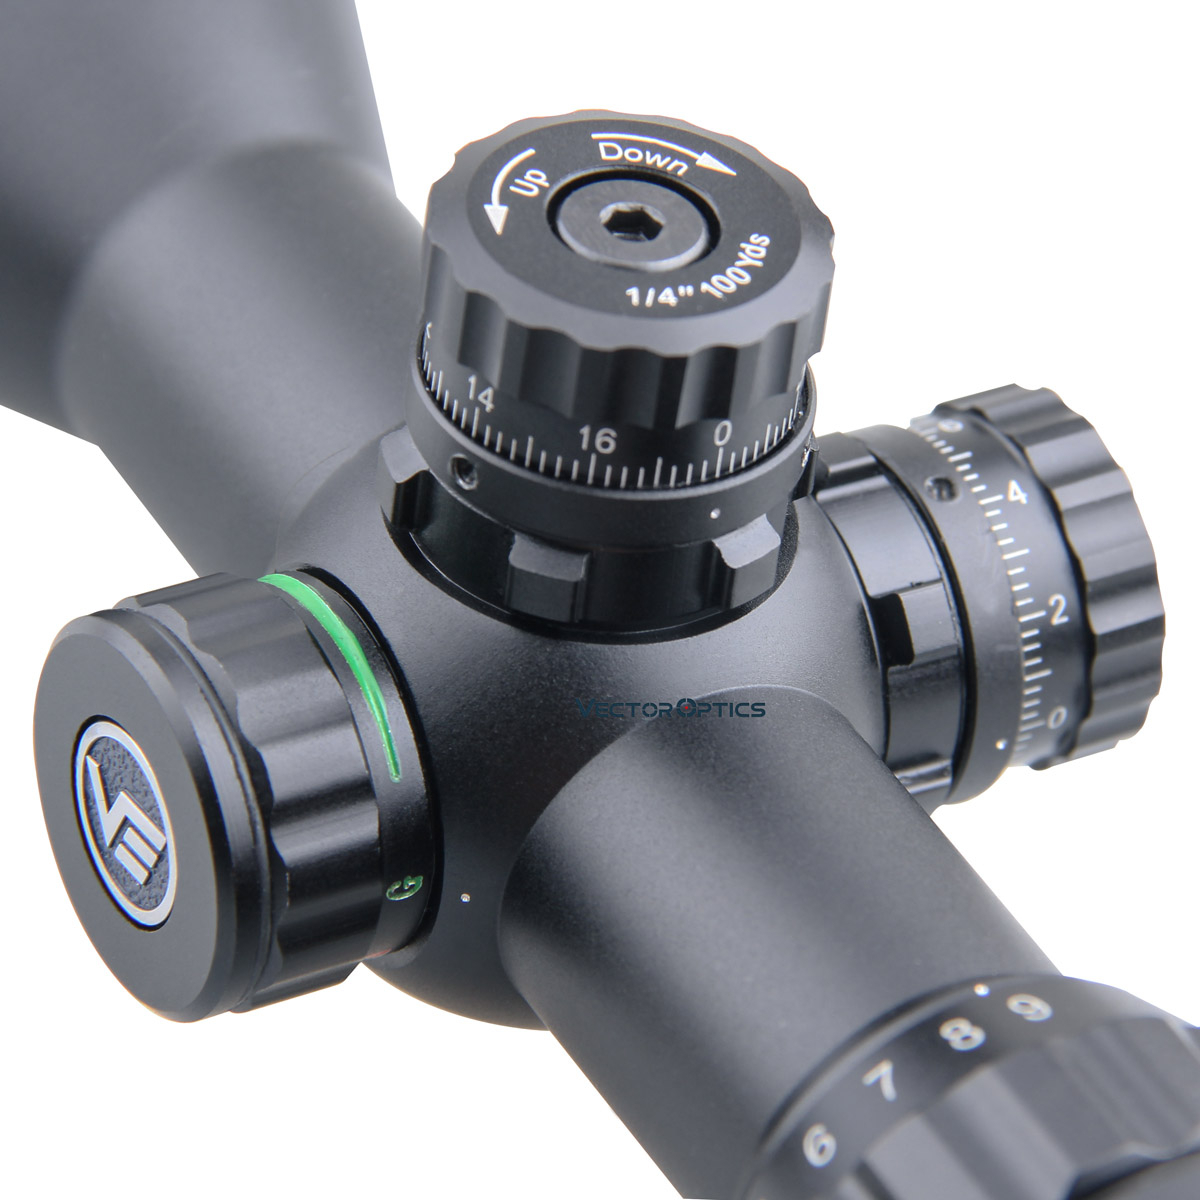 Image 4 - Vector Optics Cerato 3 9x32 Hunting Riflescope 1/4 MOA 25.4mm  Monotube Tactical Sniper Scope Ultra compact fit for .308 win  .338Riflescopes